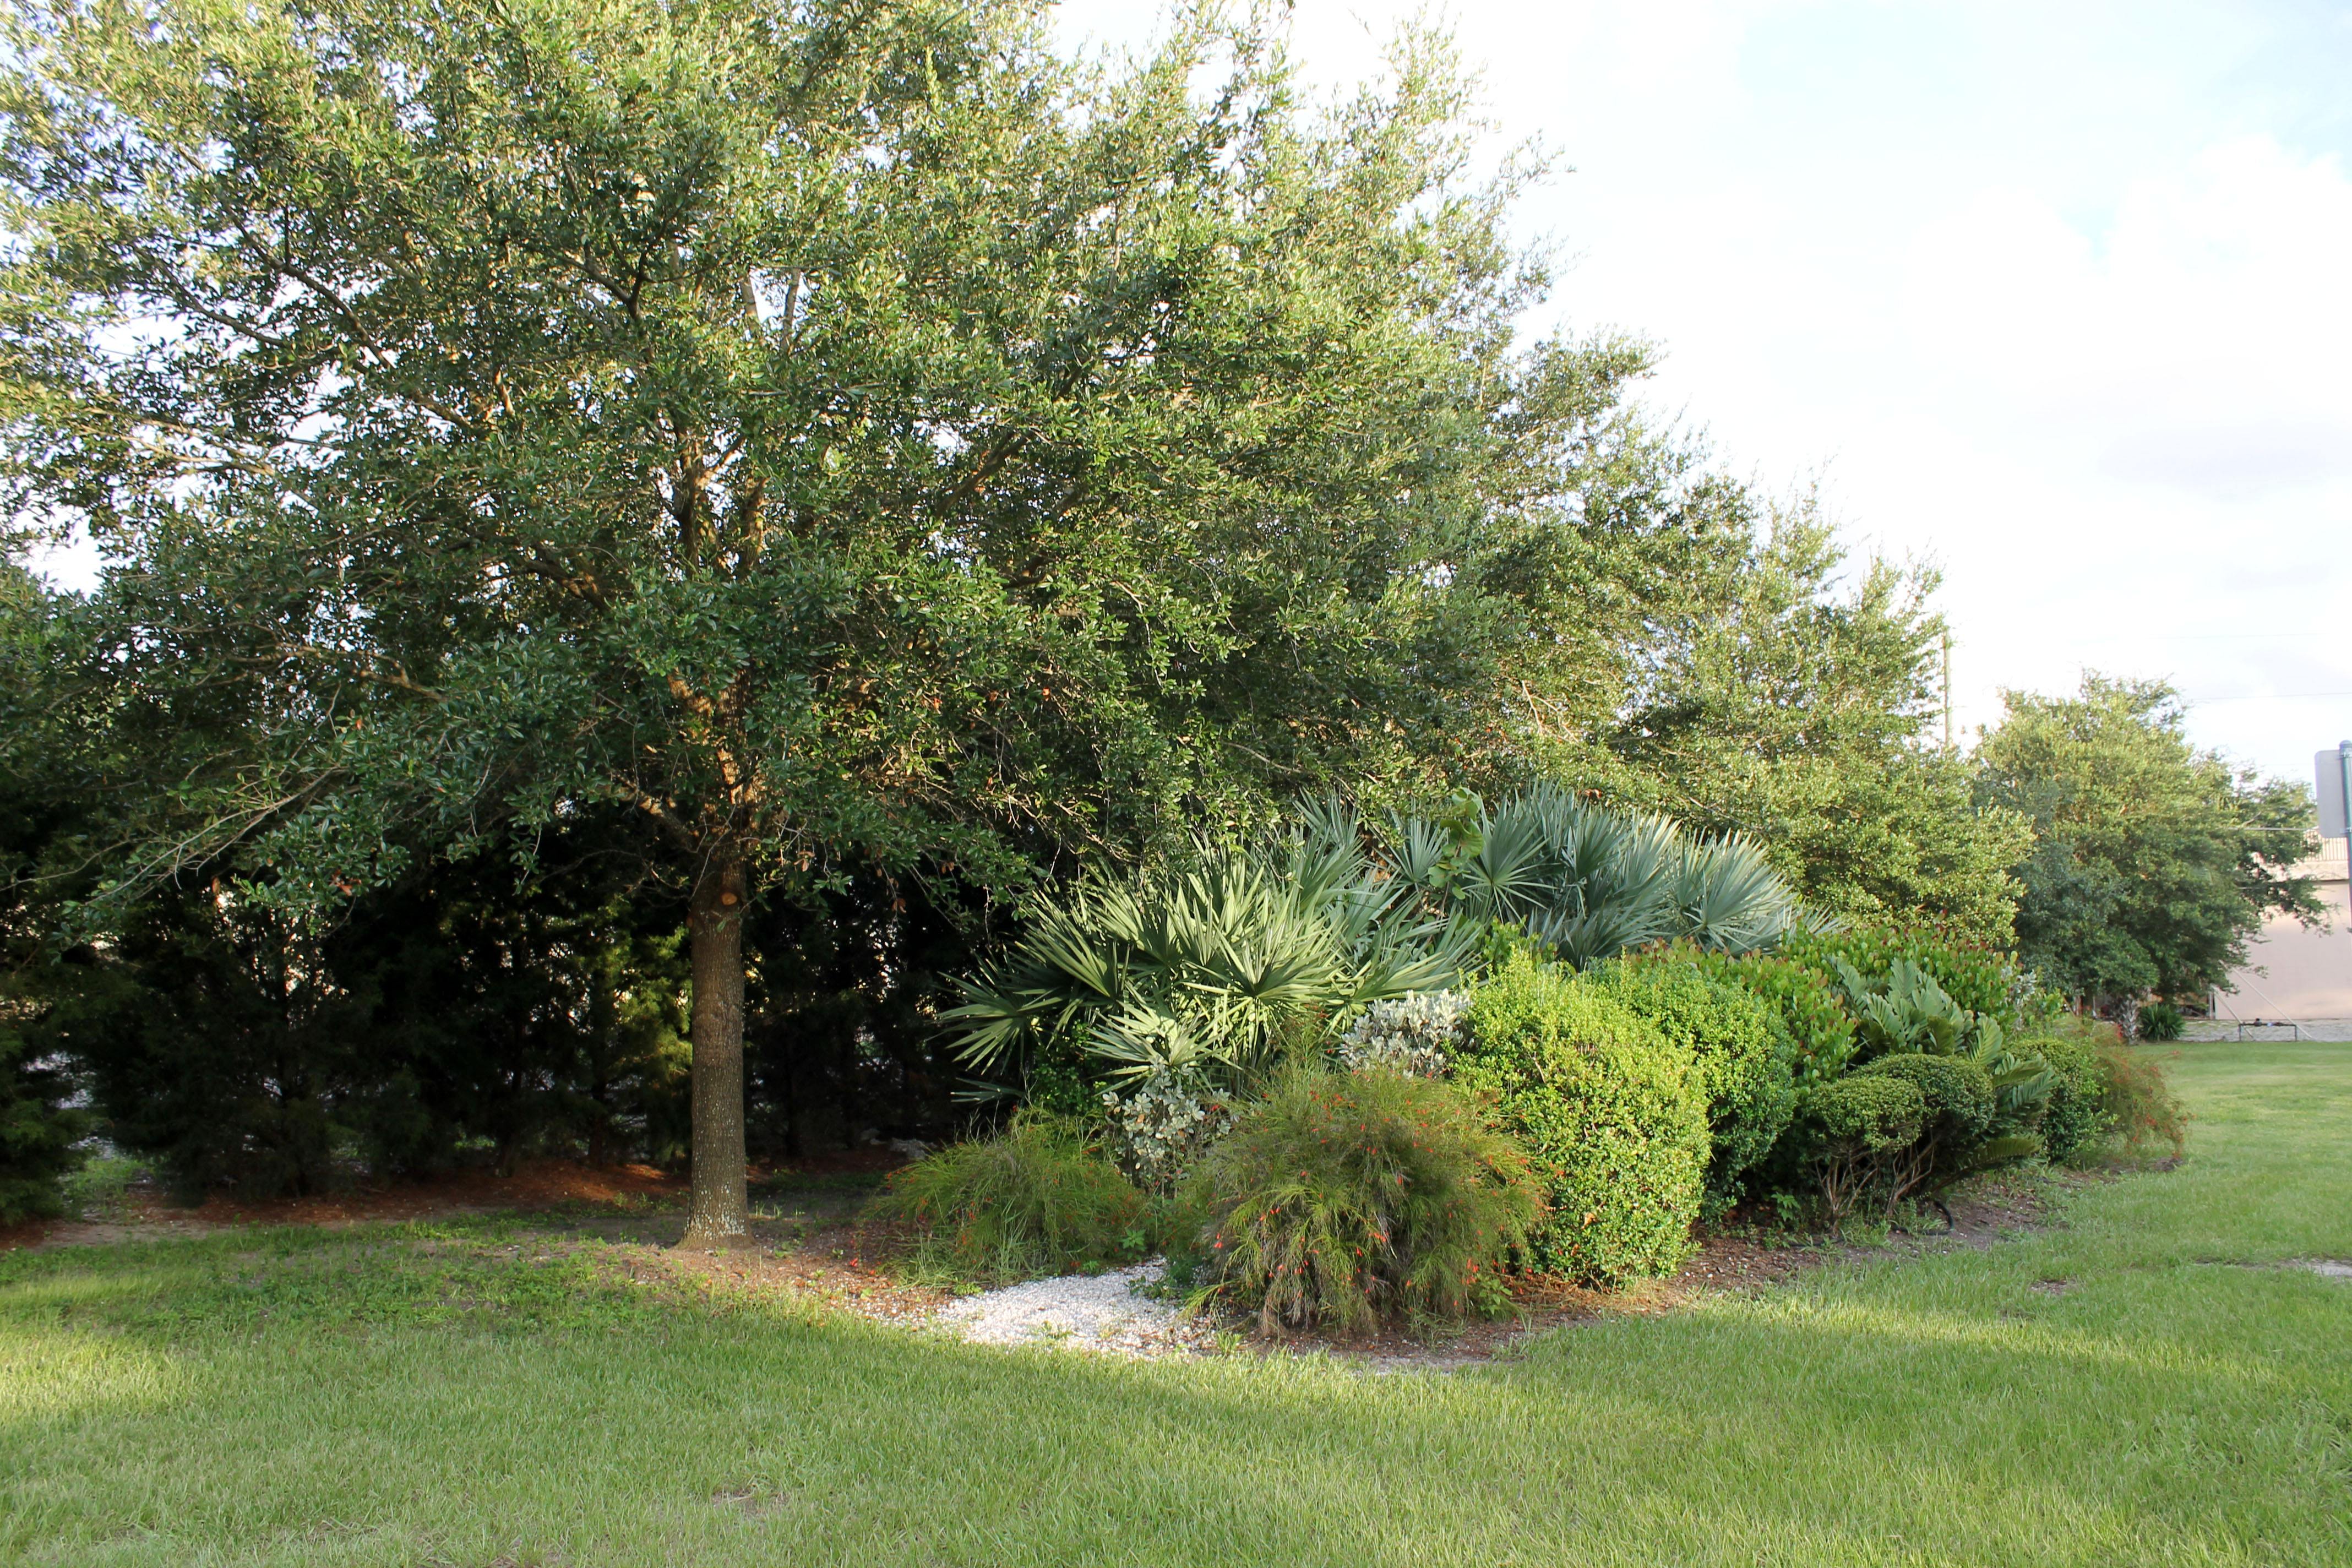 A section of trees and shrubs along the back of Wildwood Park